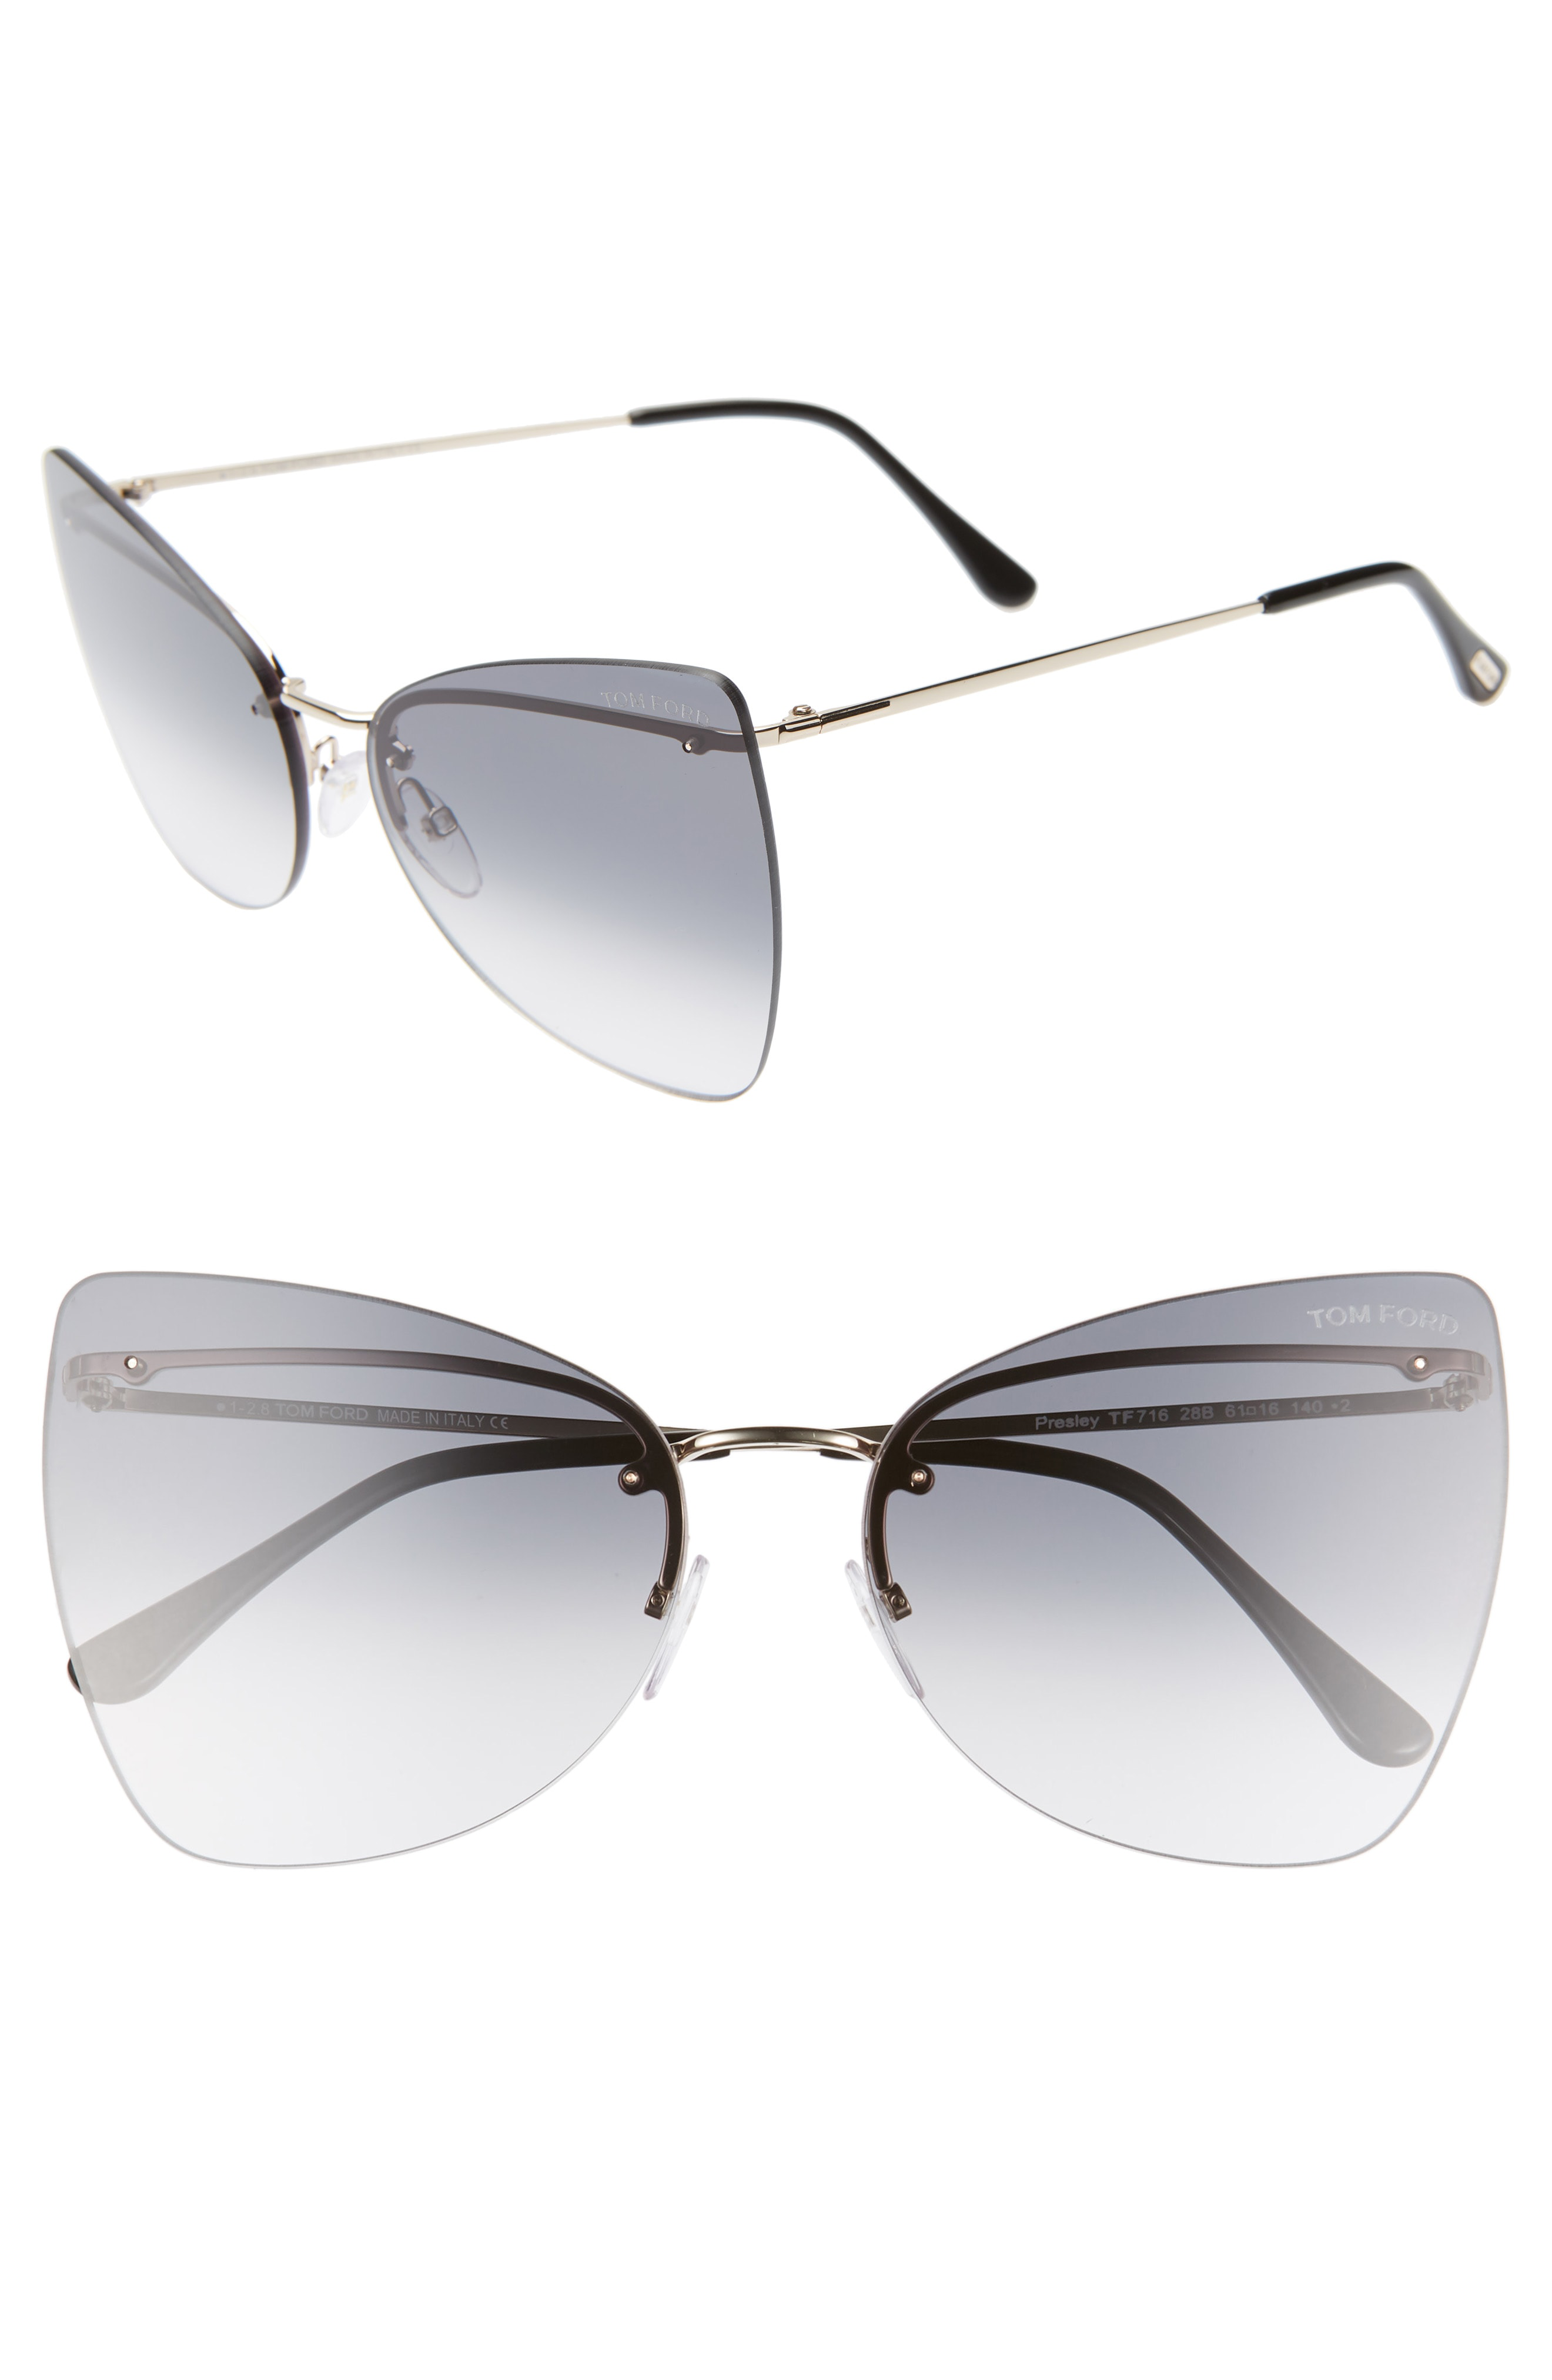 a31006183cd Oversized lenses made from lightweight nylon lend maximum impact to Italian  sunglasses with a sleek butterfly silhouette. Style Name  Tom Ford Presley  61Mm ...